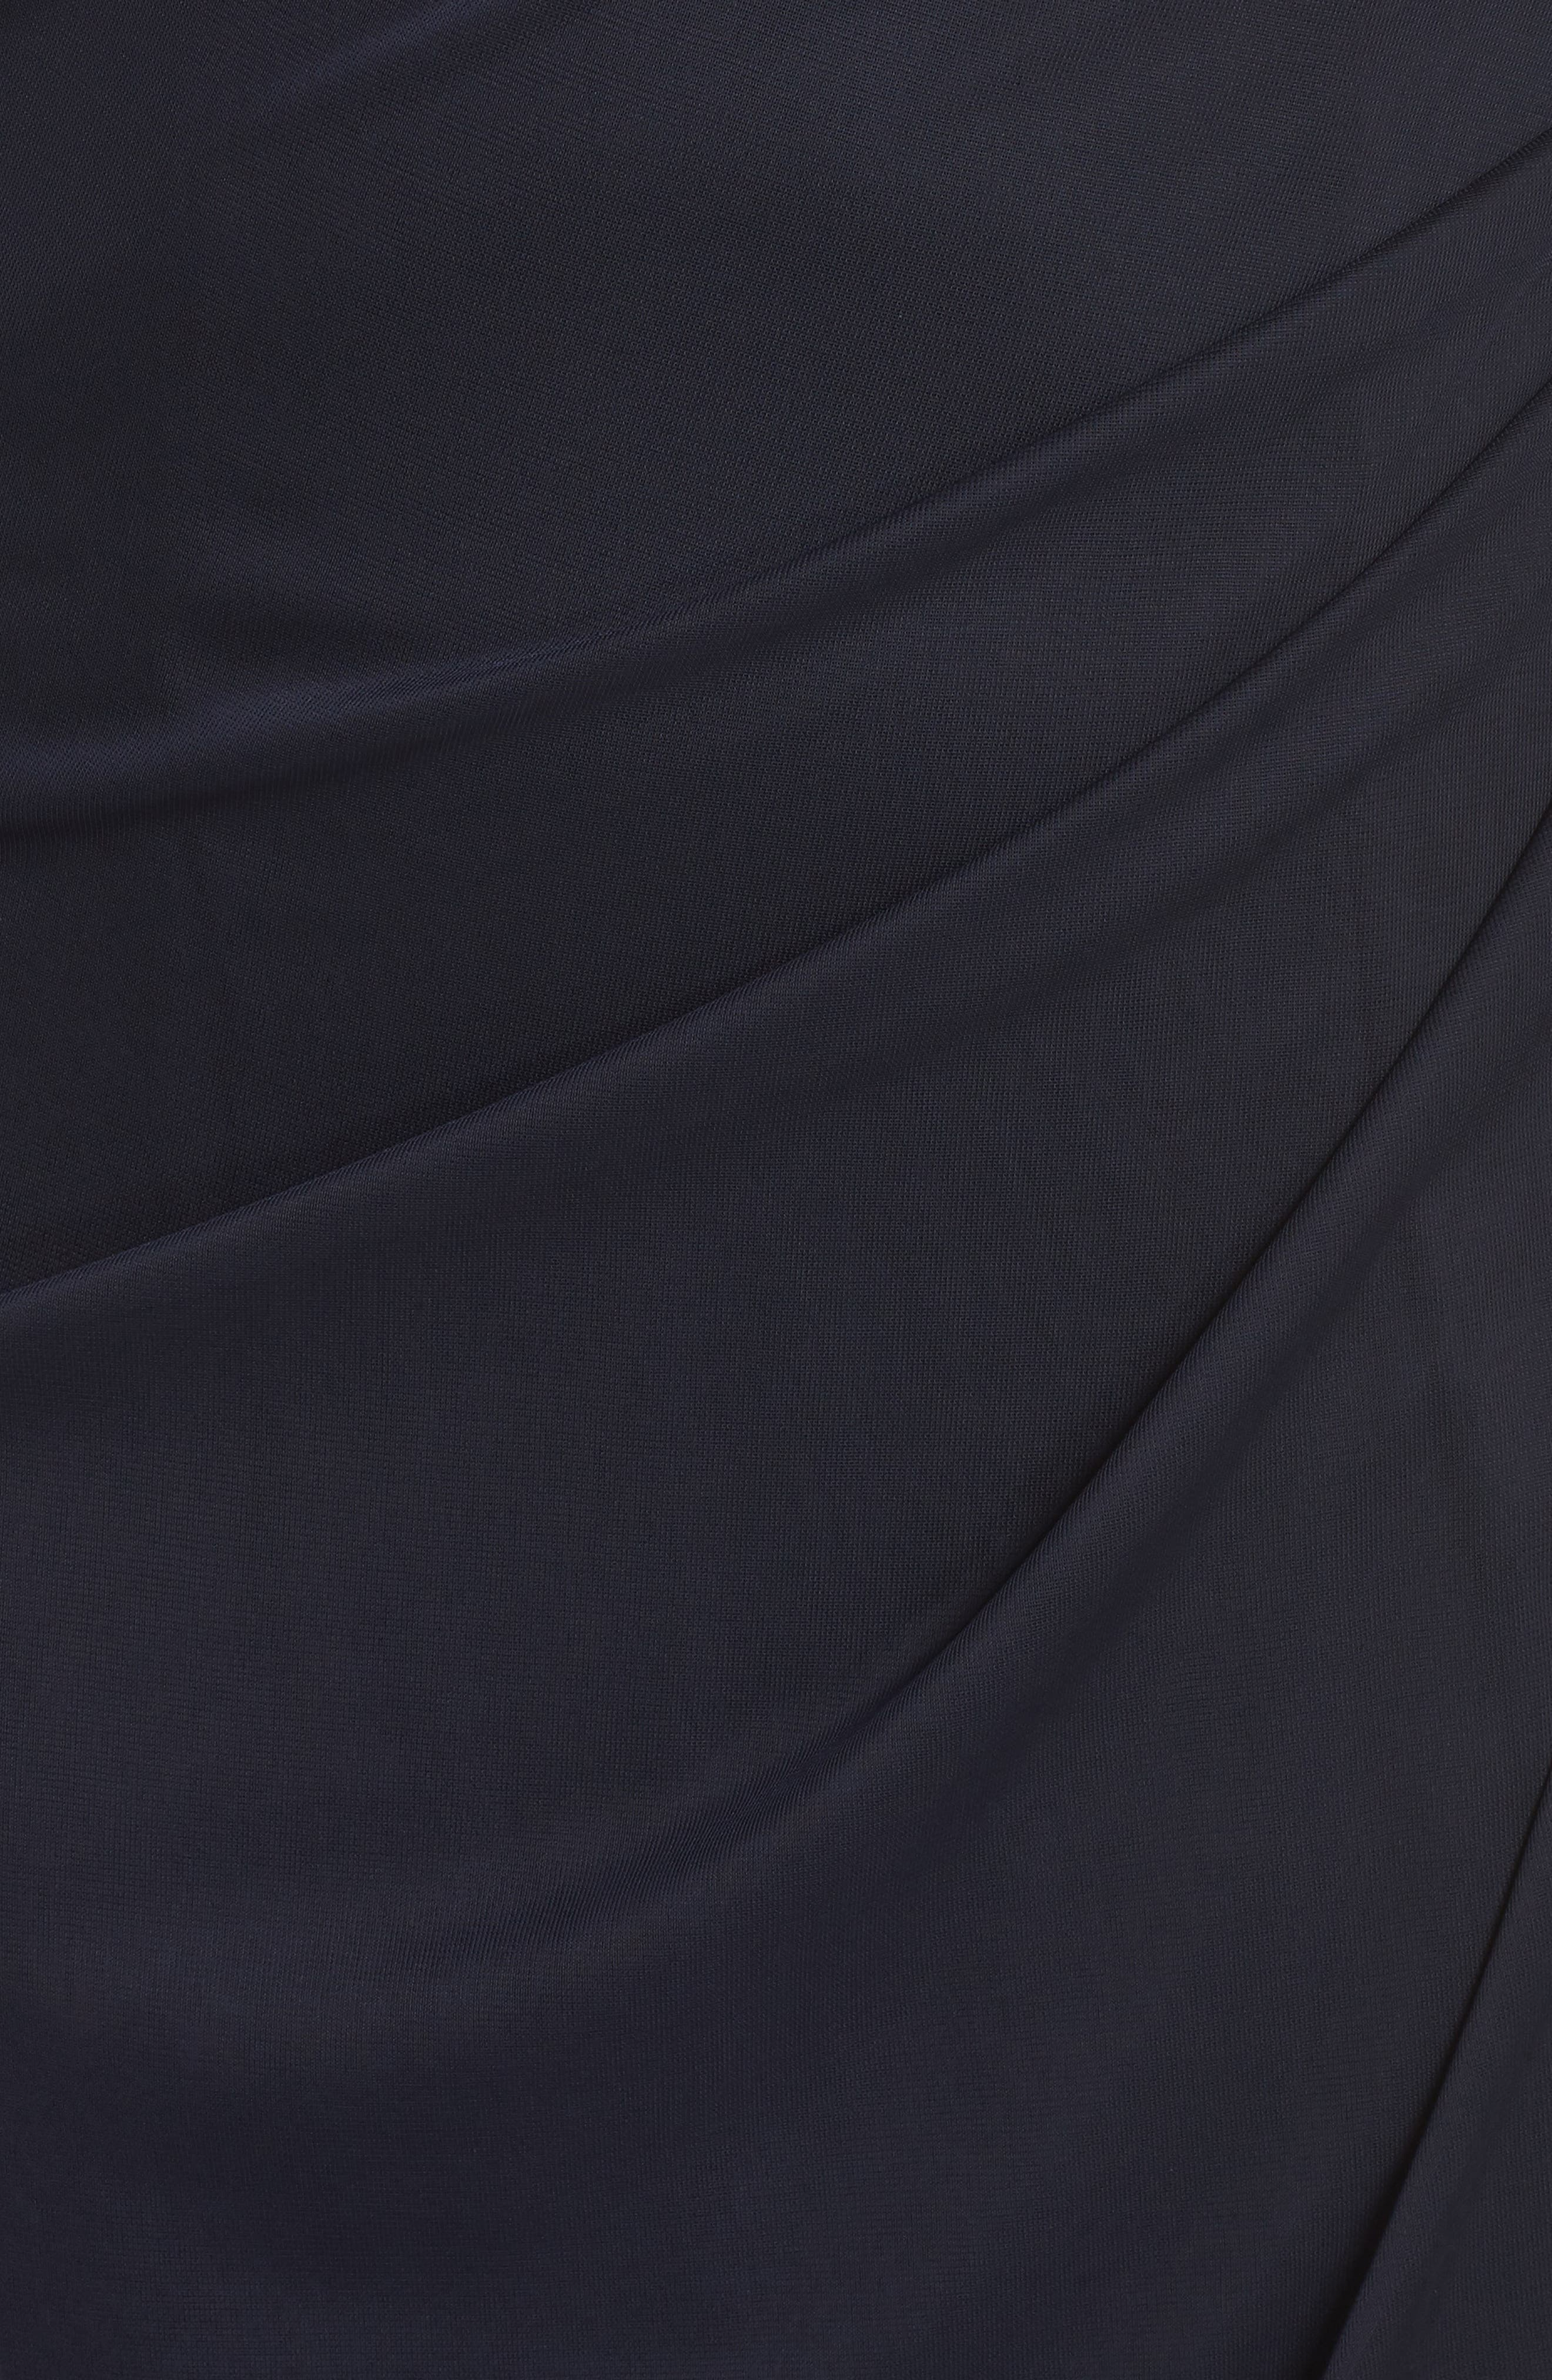 Beaded Off the Shoulder Gown,                             Alternate thumbnail 6, color,                             NAVY/ GUNMETAL